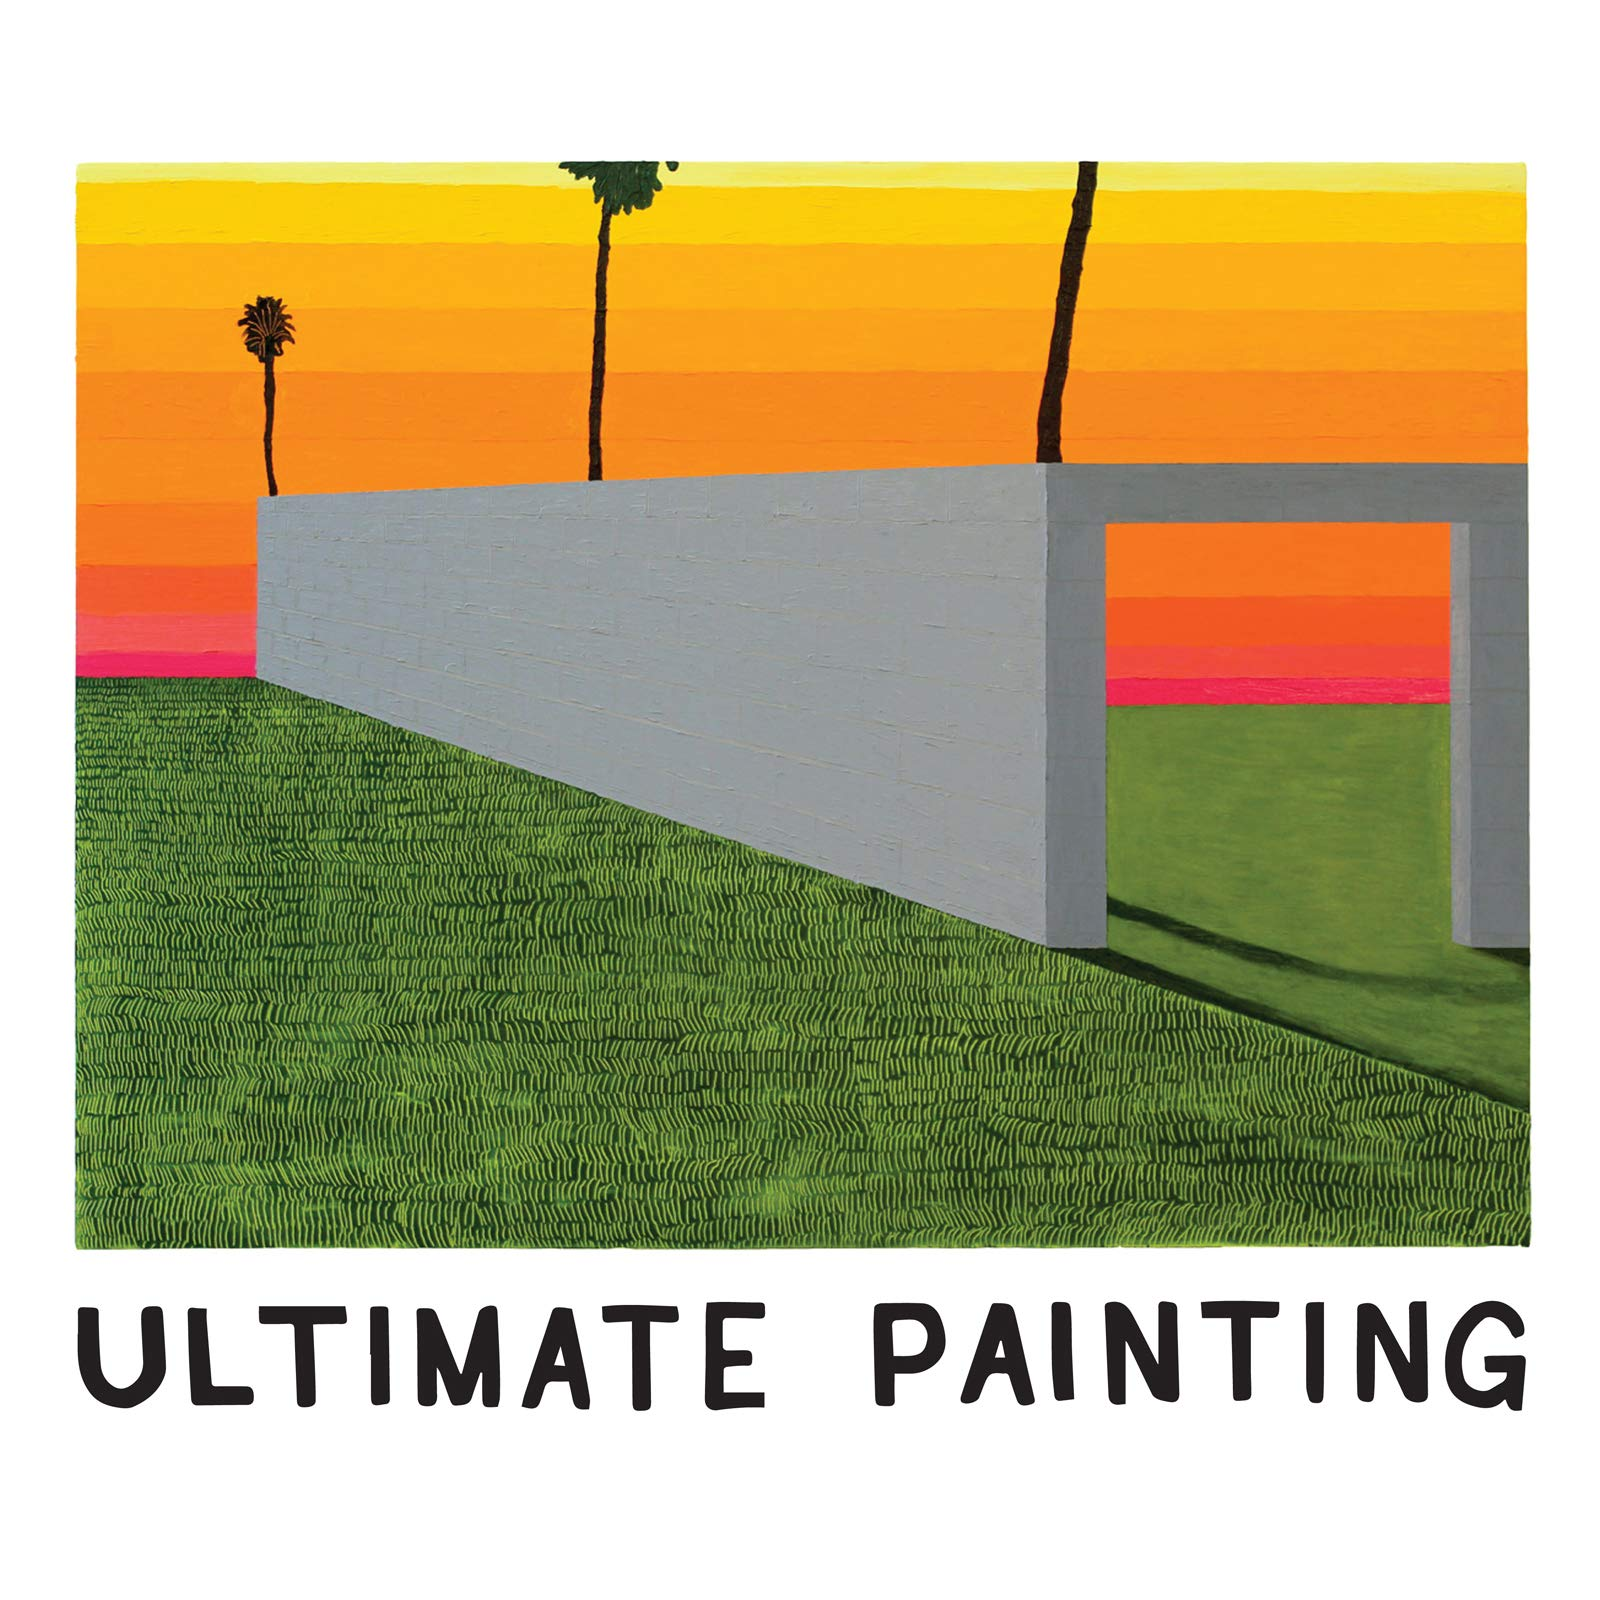 Ultimate Painting - Ultimate Painting (2014) [FLAC] Download